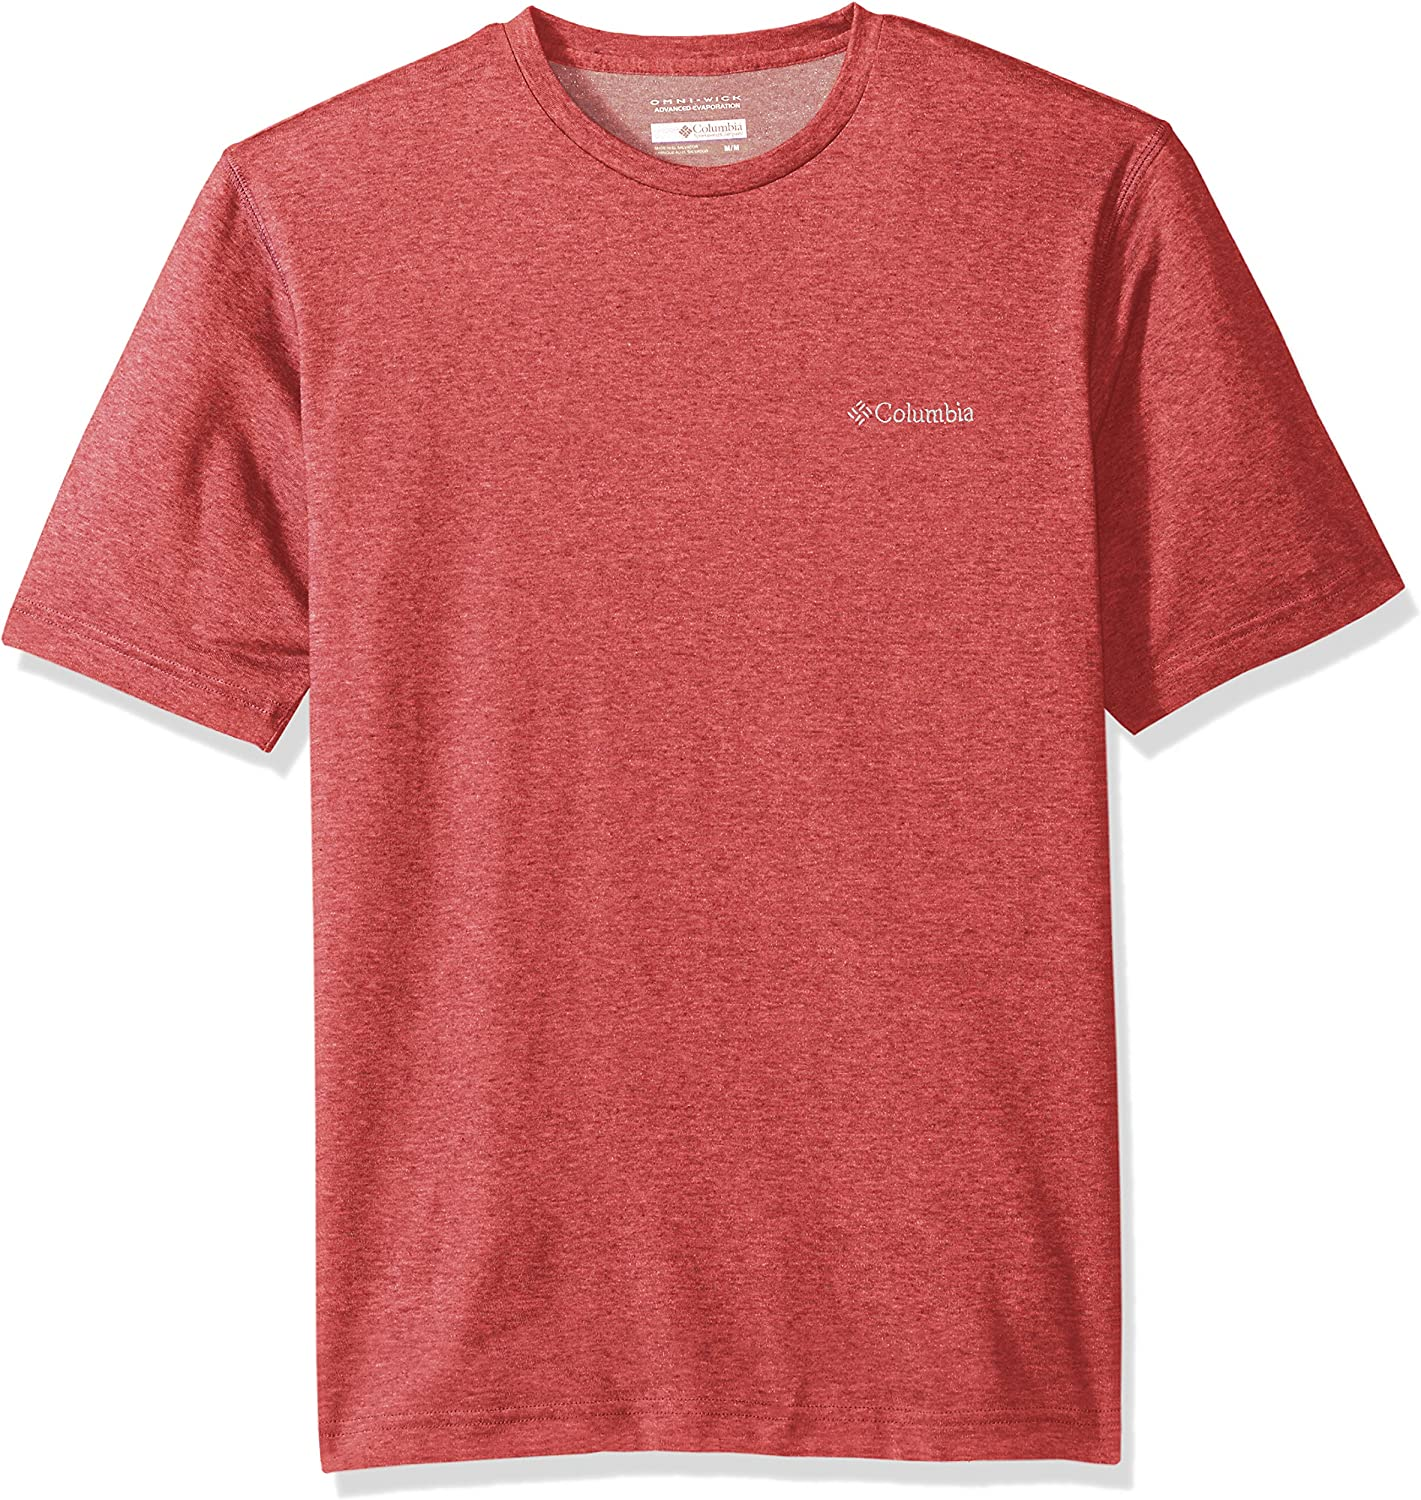 "New Mens Columbia /""Thistletown Park/"" Omni-Wick Short Sleeve Crew Neck Shirt Tee"